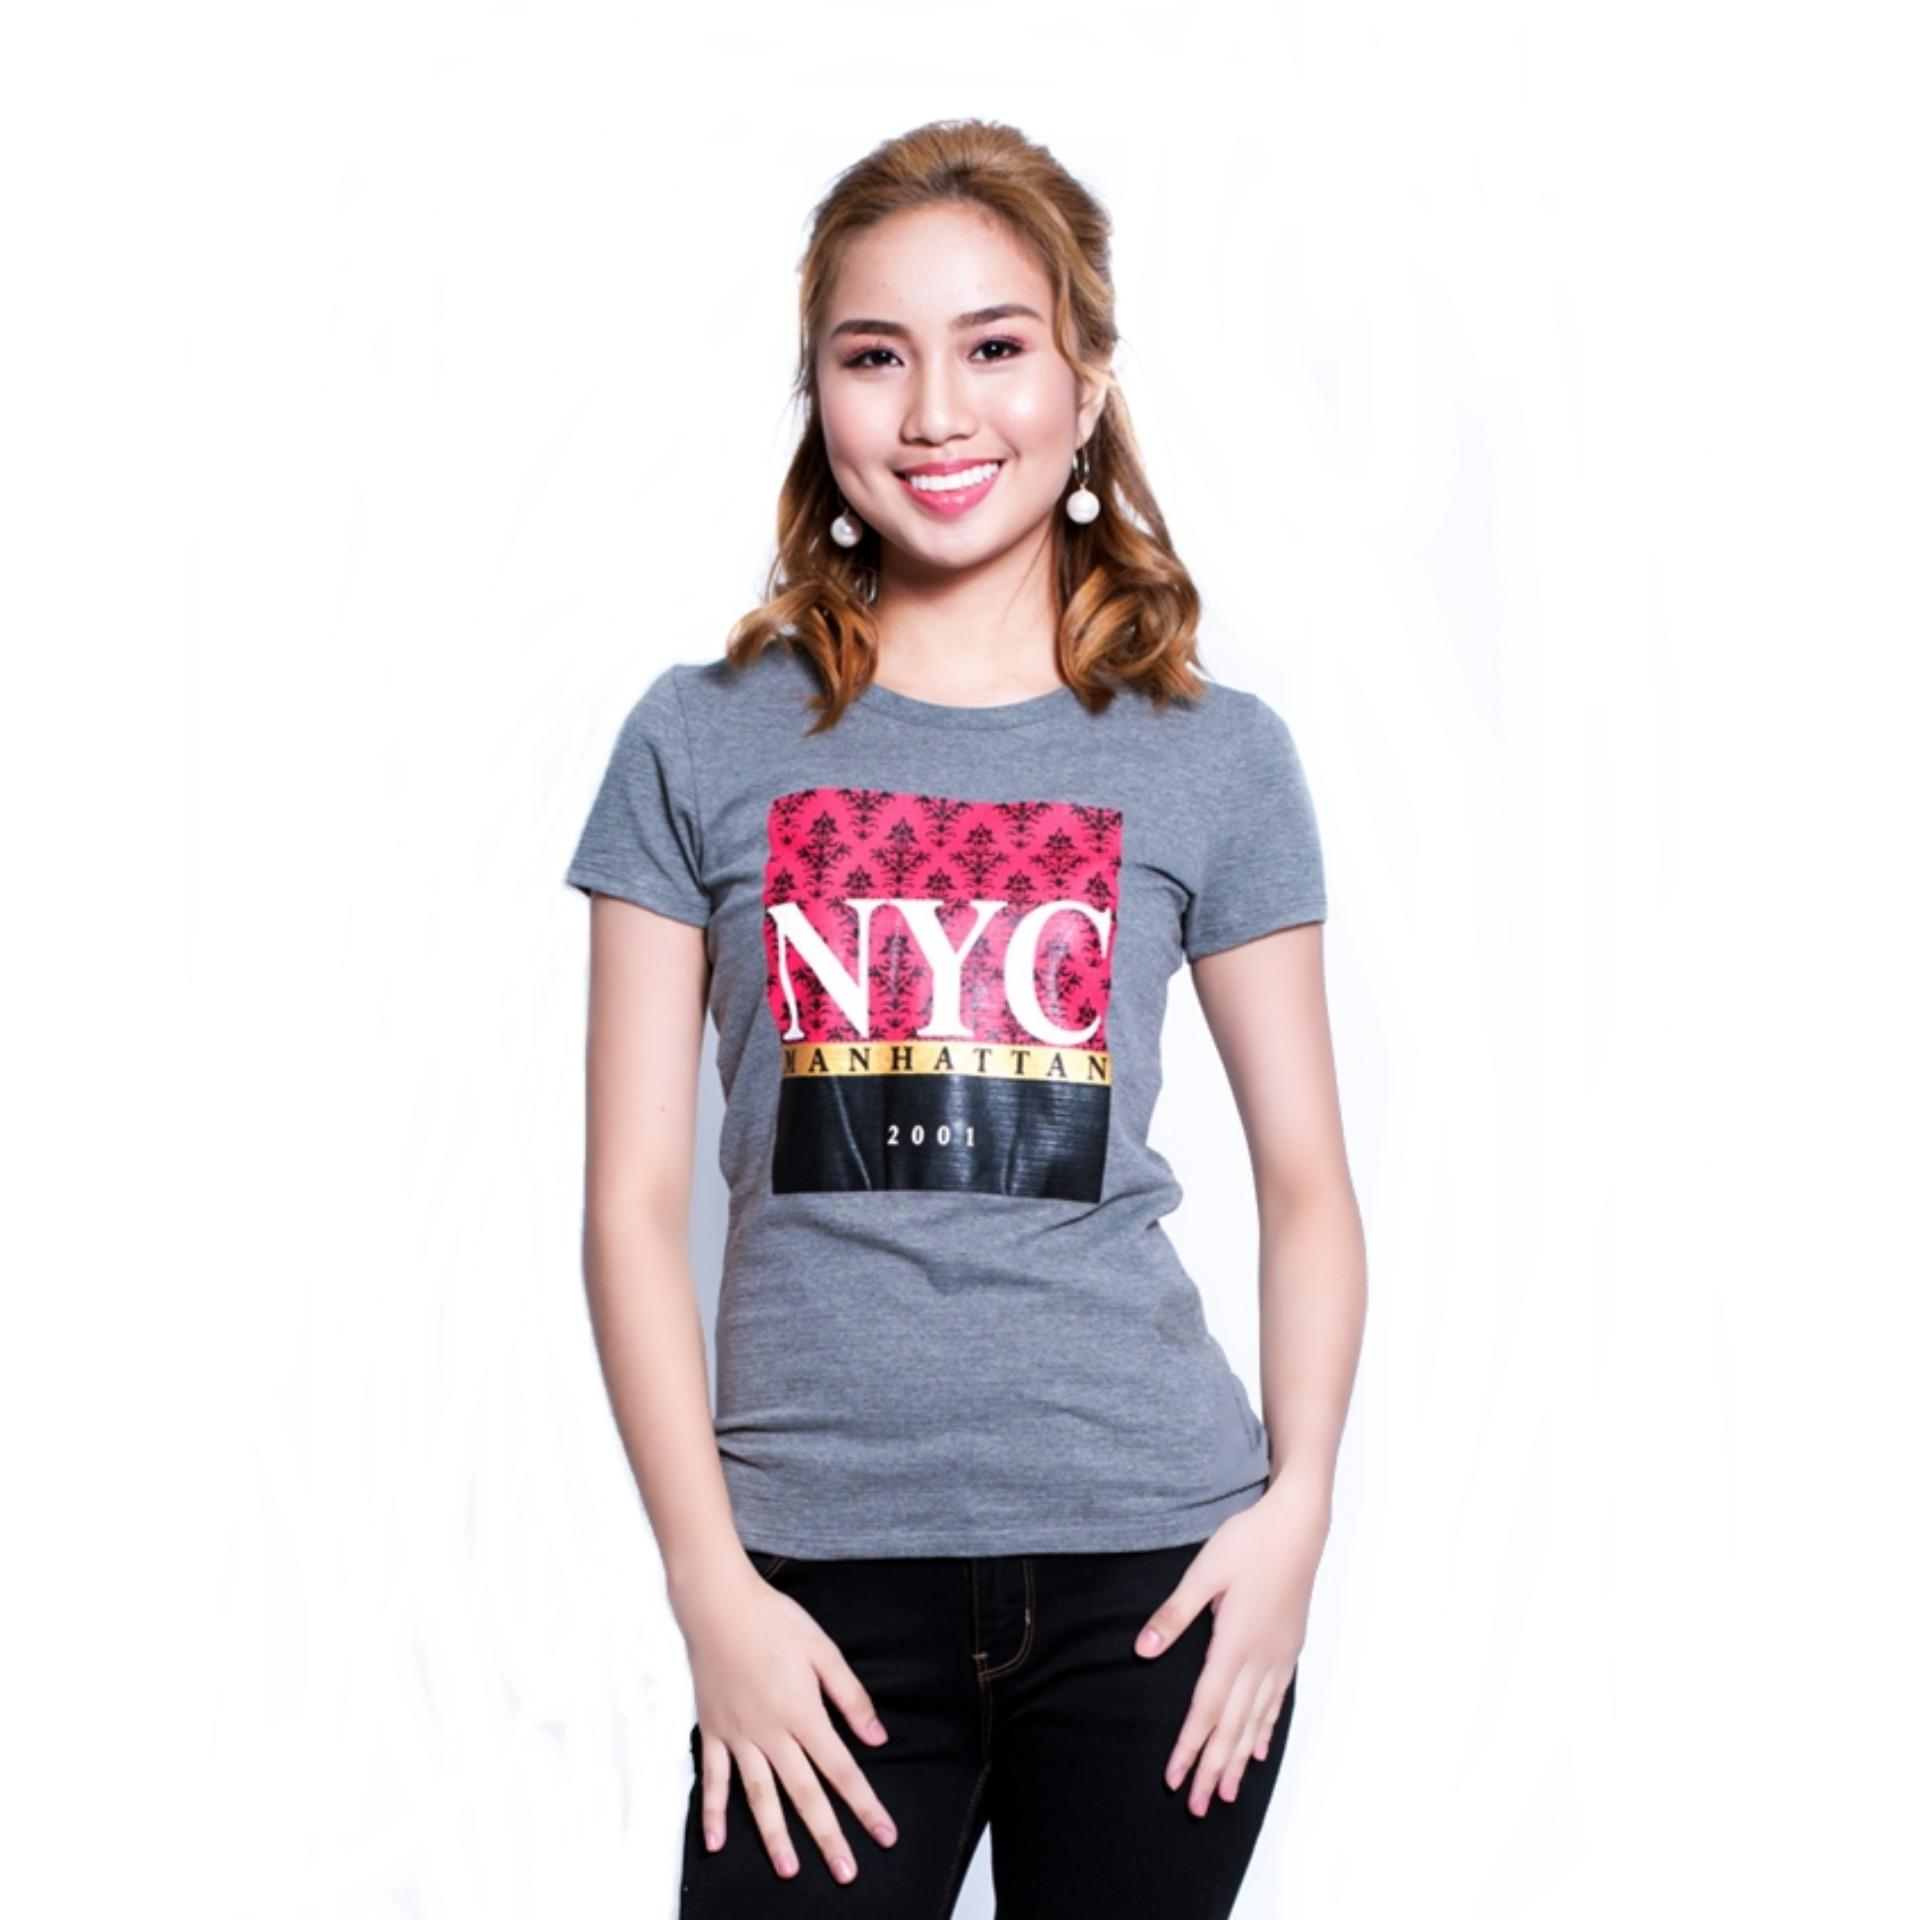 ec94f177899f9 Womens Clothes for sale - Clothes for Women Online Deals & Prices in ...